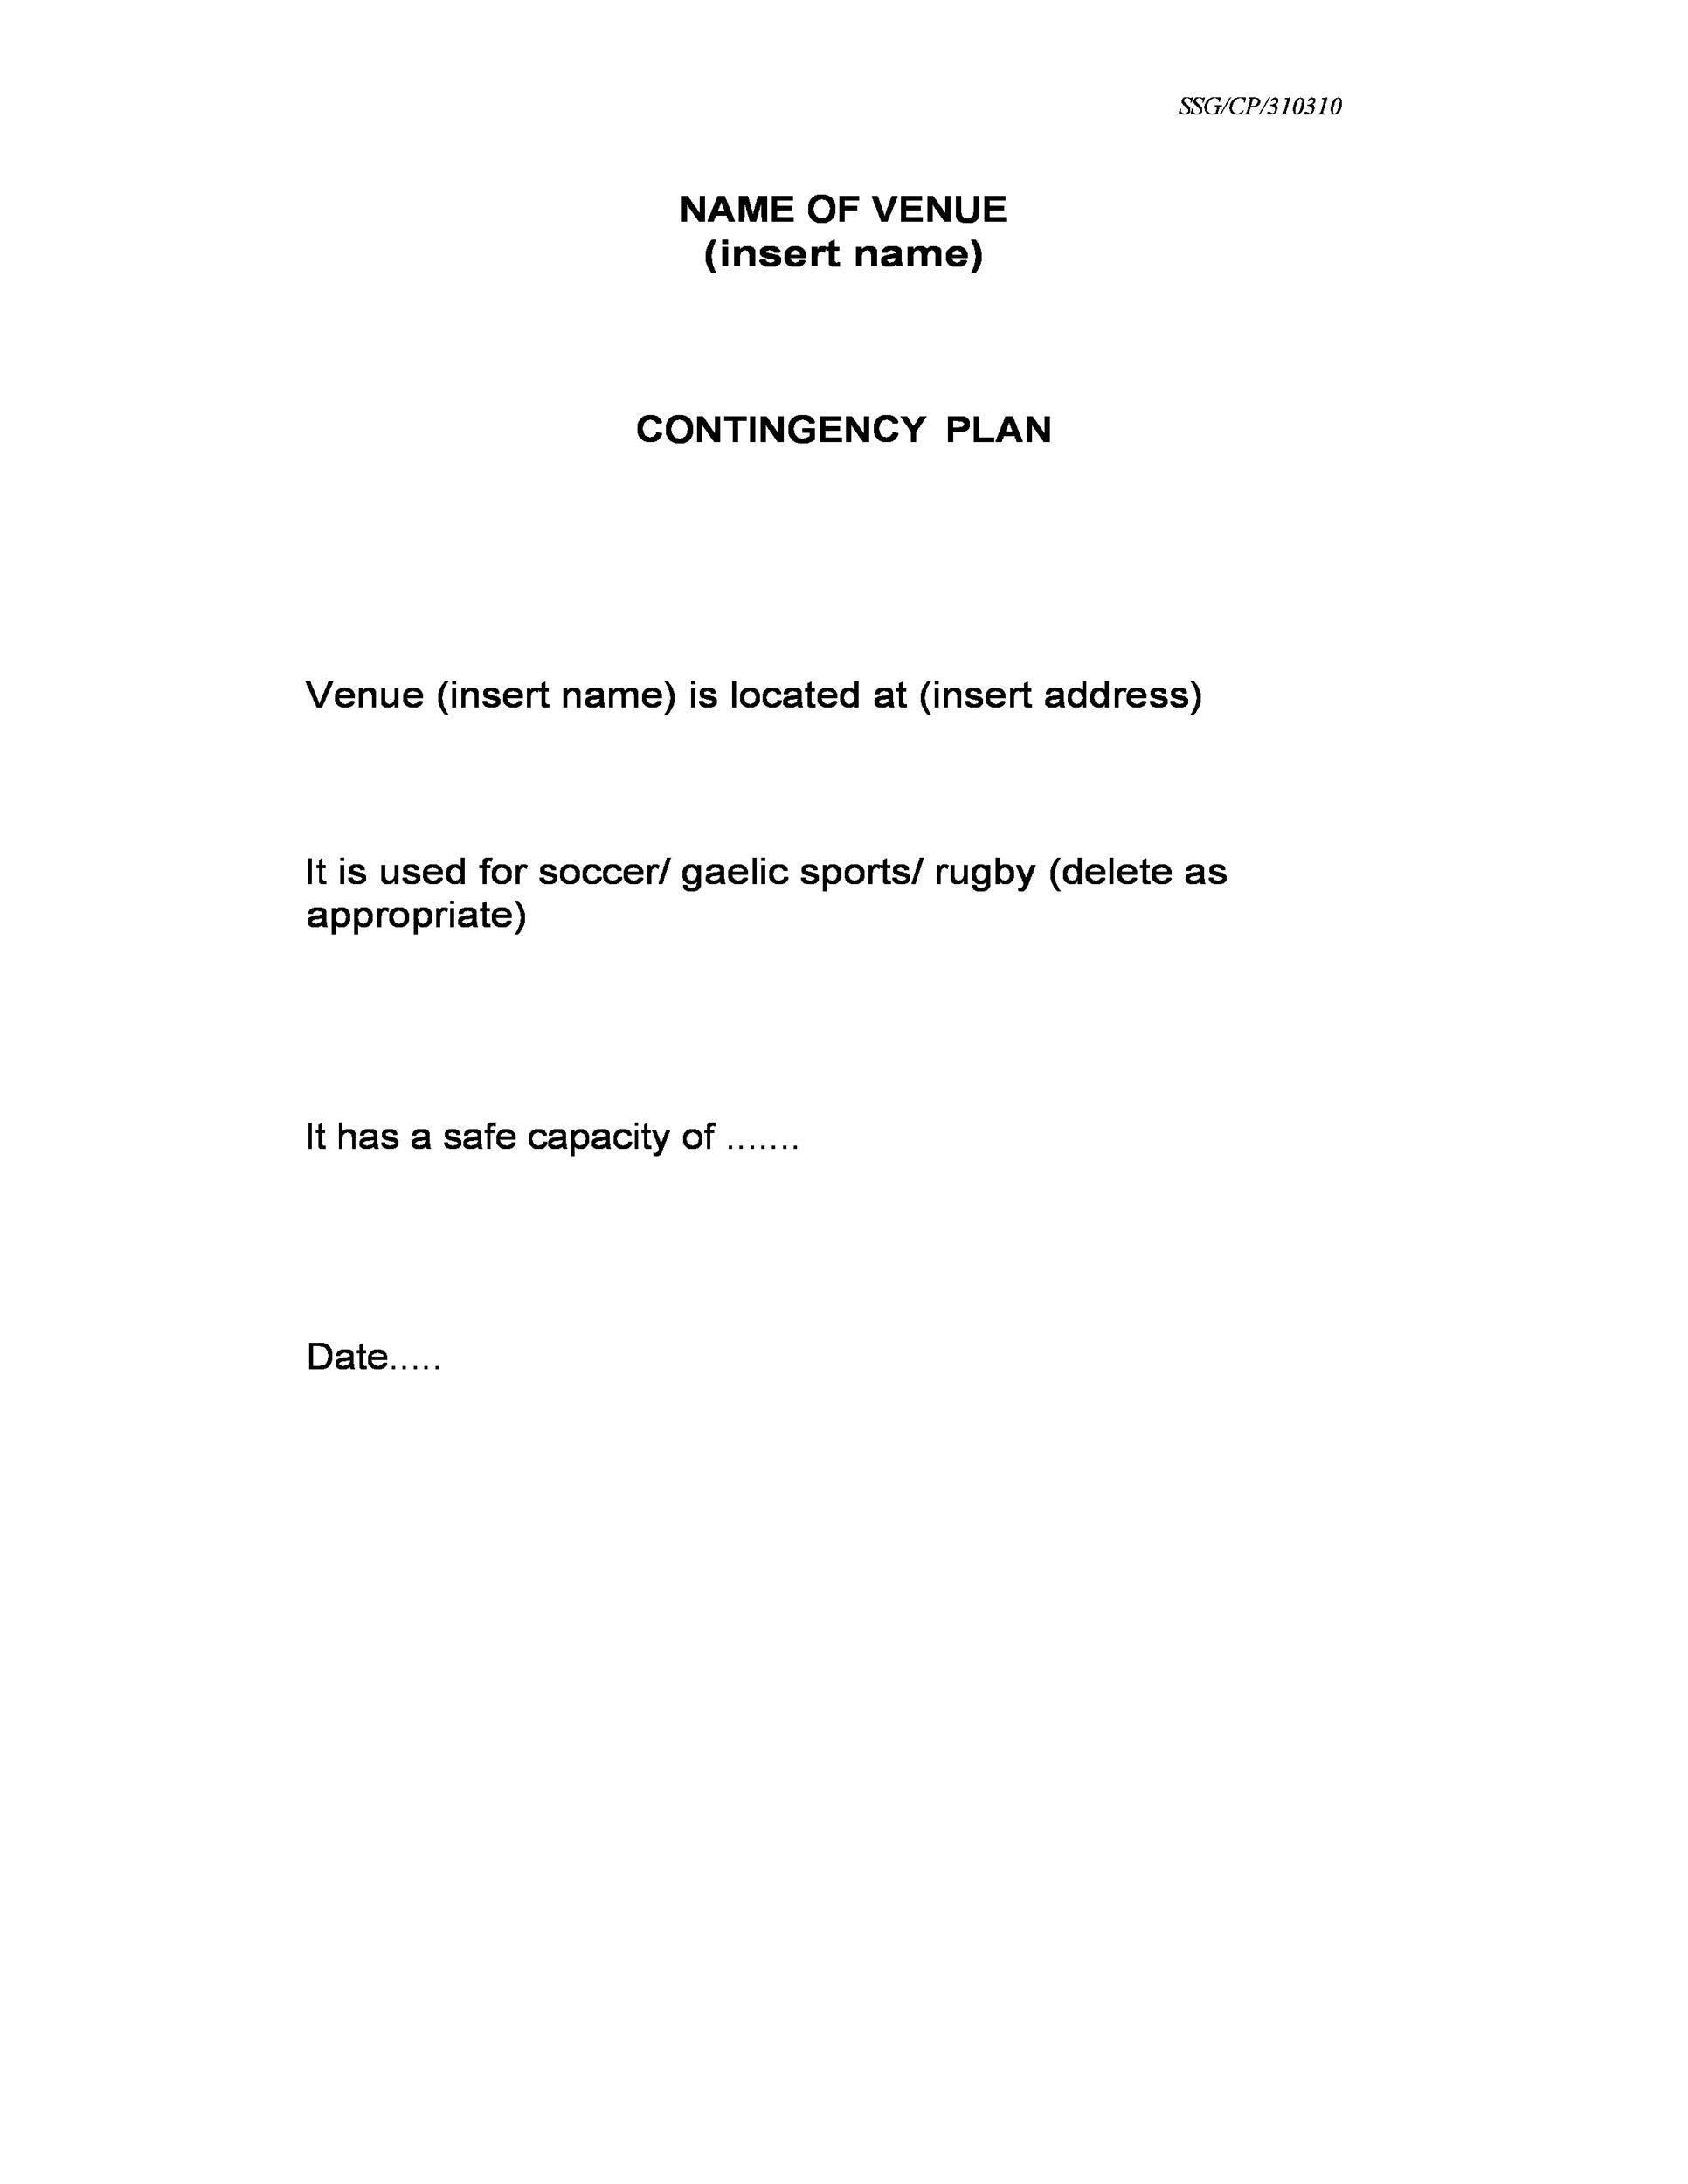 Free contingency plan template 14